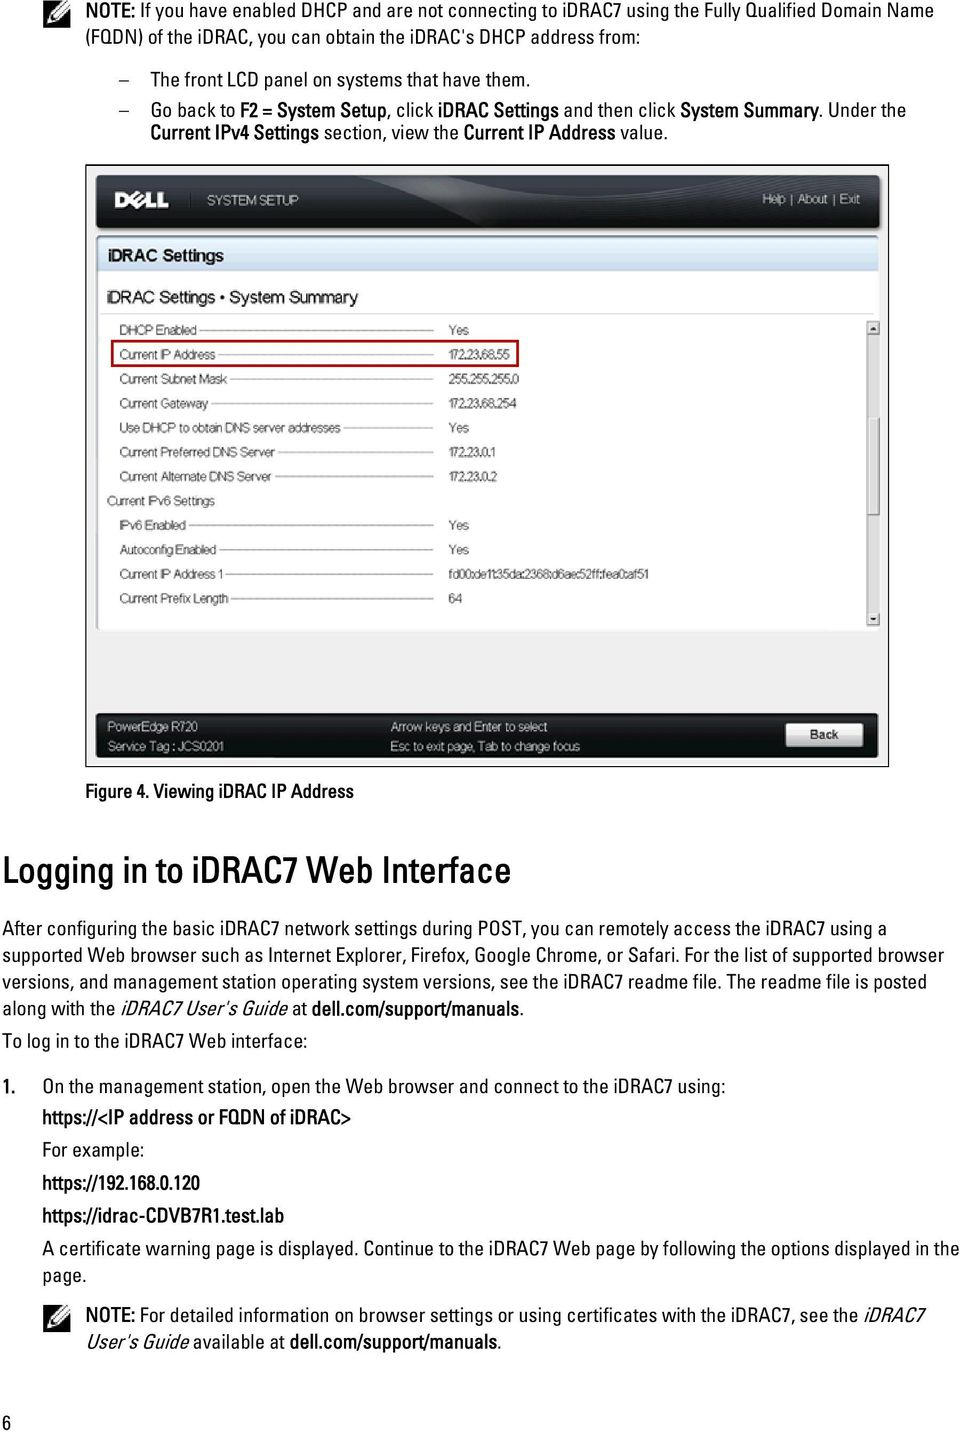 Viewing idrac IP Address Logging in to idrac7 Web Interface After configuring the basic idrac7 network settings during POST, you can remotely access the idrac7 using a supported Web browser such as